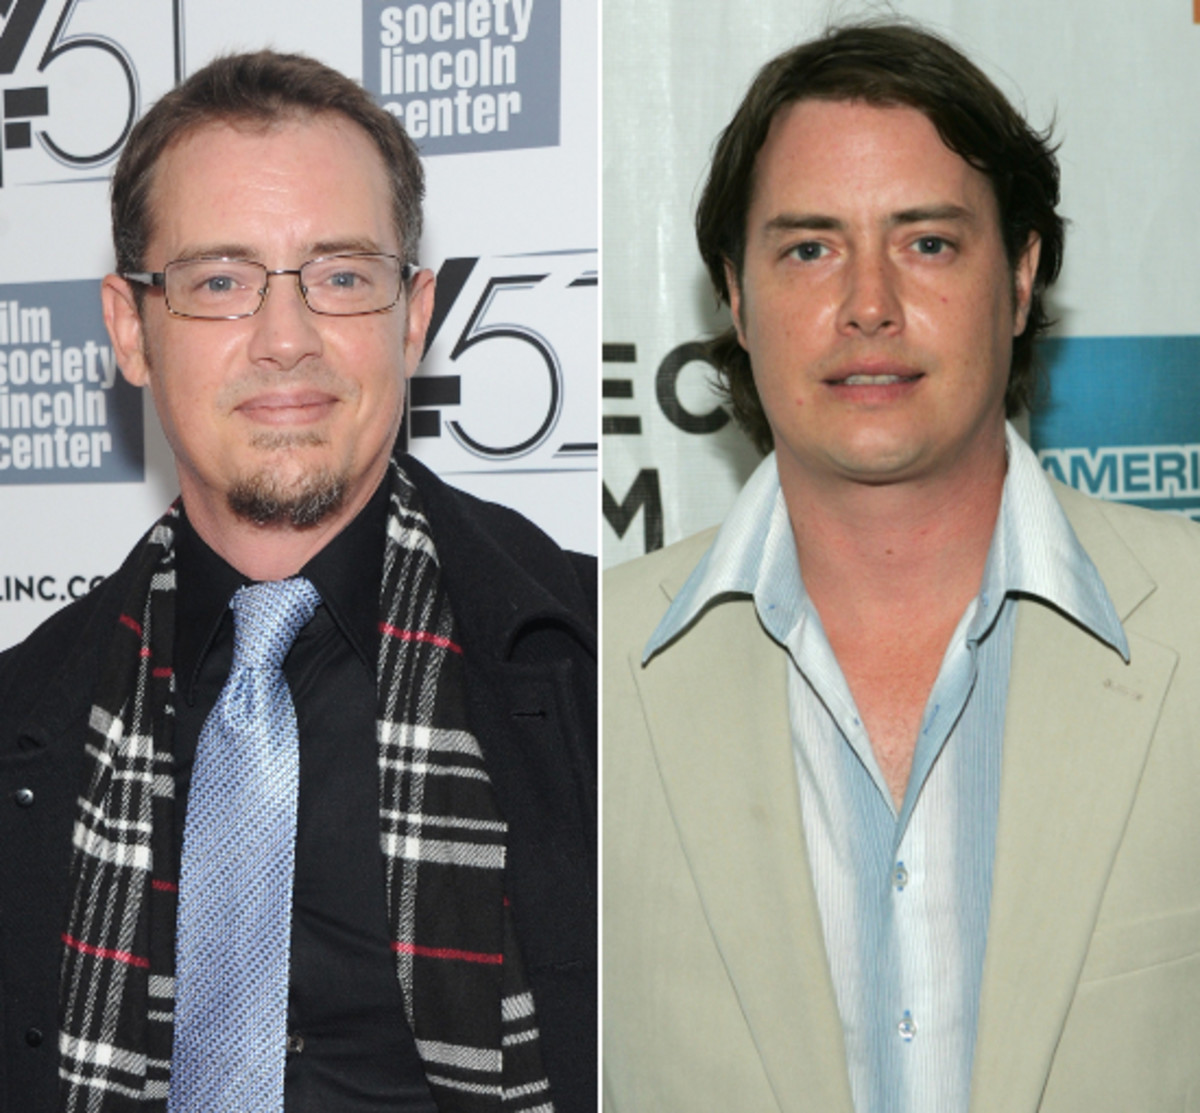 These twin brothers act in different shows and movies.